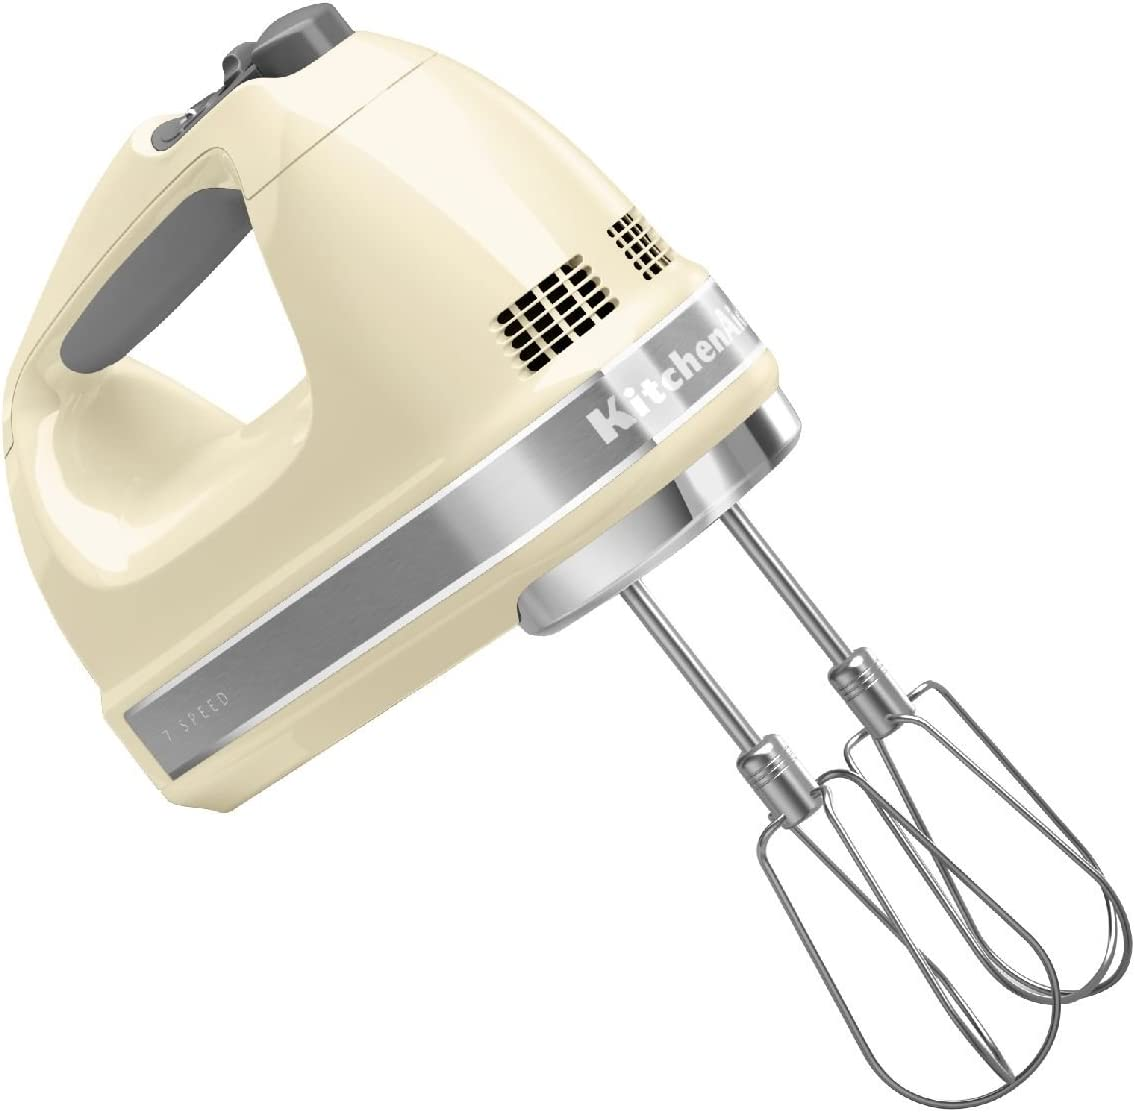 61N9aDM61LL. AC SL1280 Best Hand Mixers Reviews 2020 (2021) - Buyer's Guide